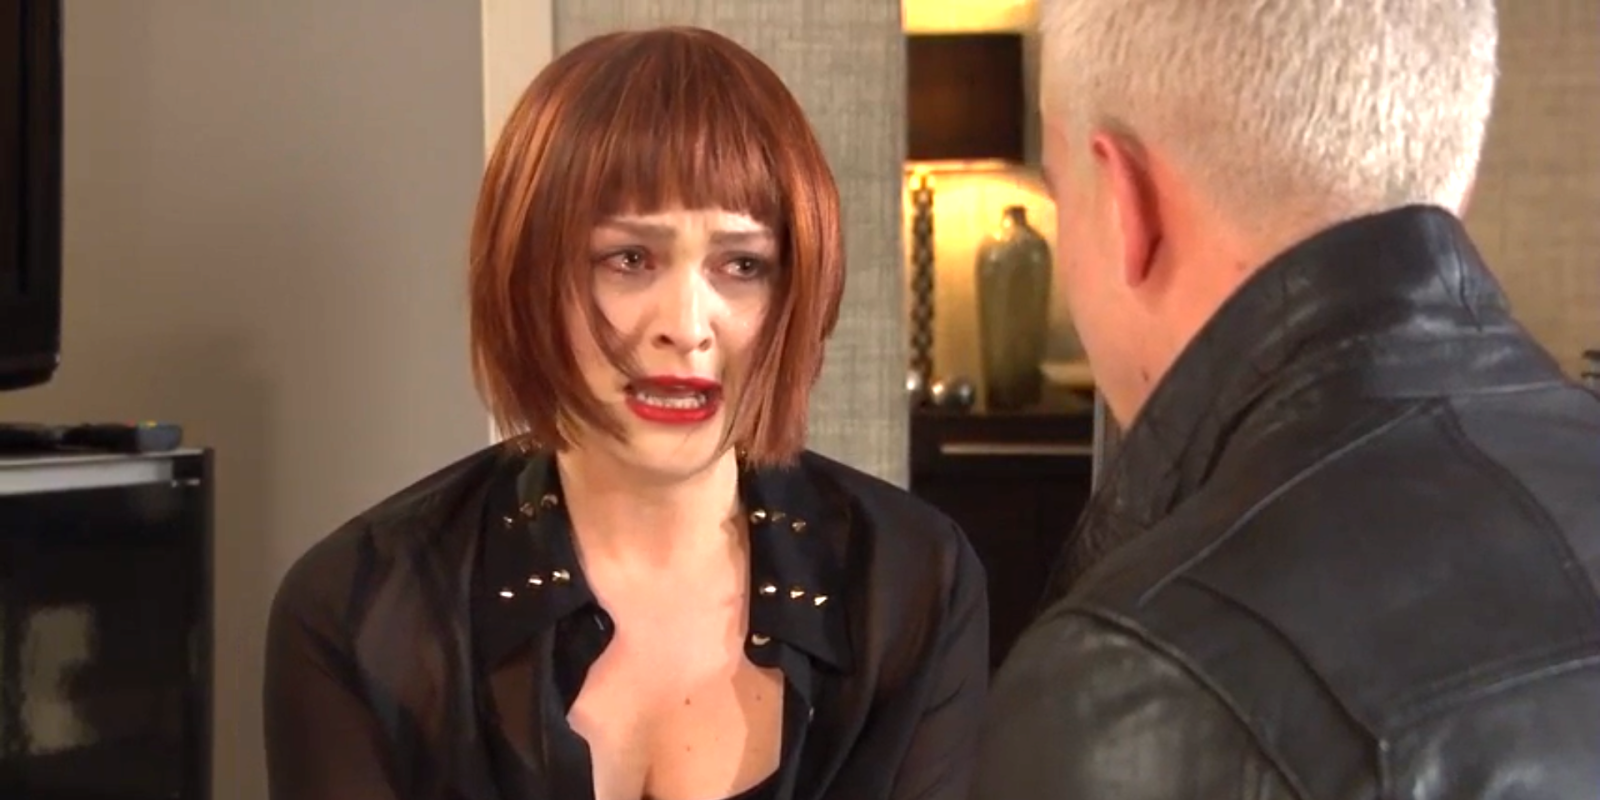 Hollyoaks' Sienna Blake tells a shocking cancer lie in the fight for Joel Dexter